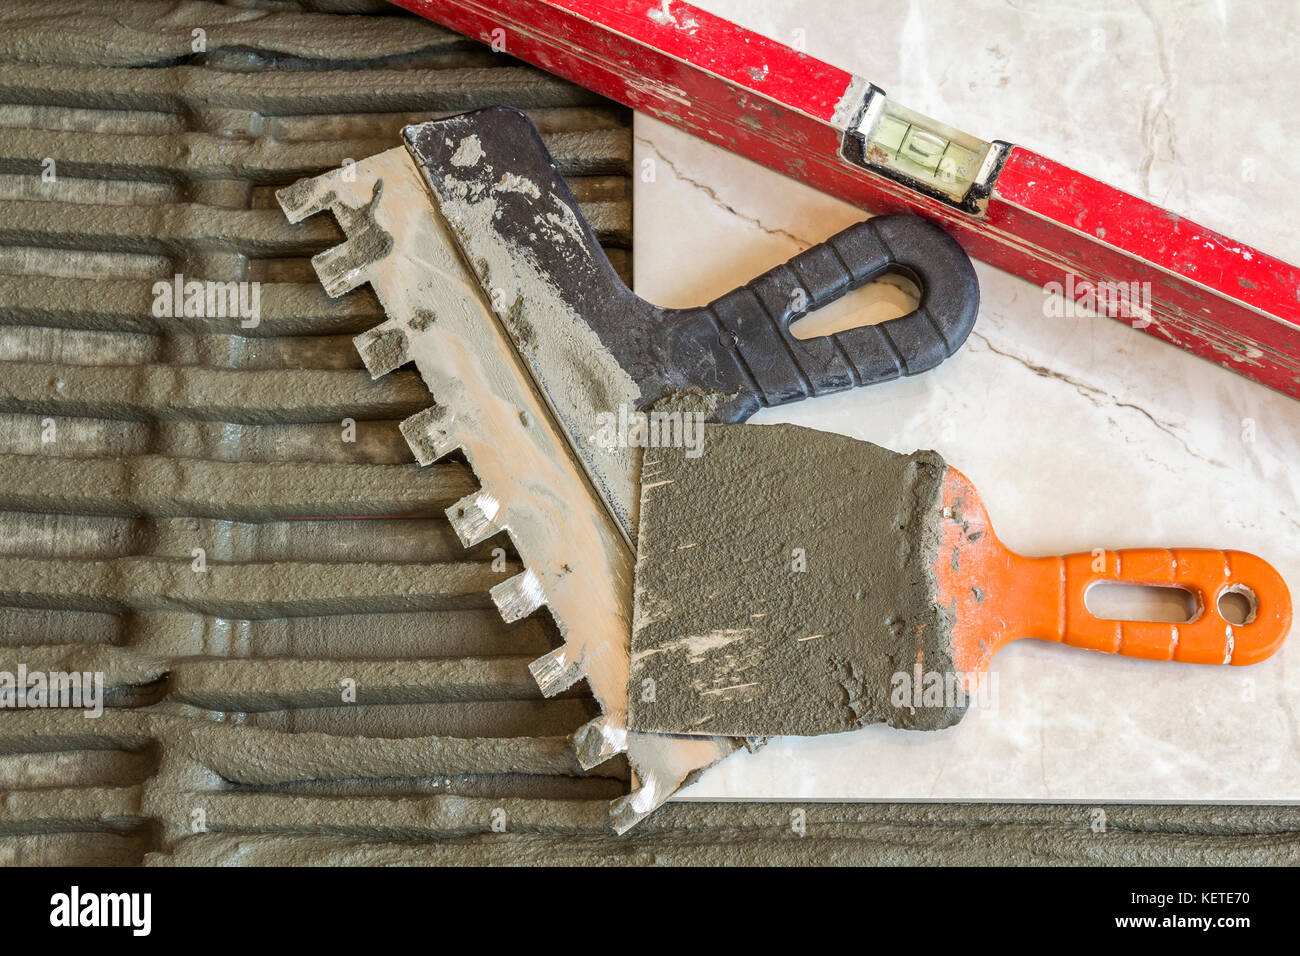 Ceramic Tiles And Tools For Tiler Floor Tiles Installation Home